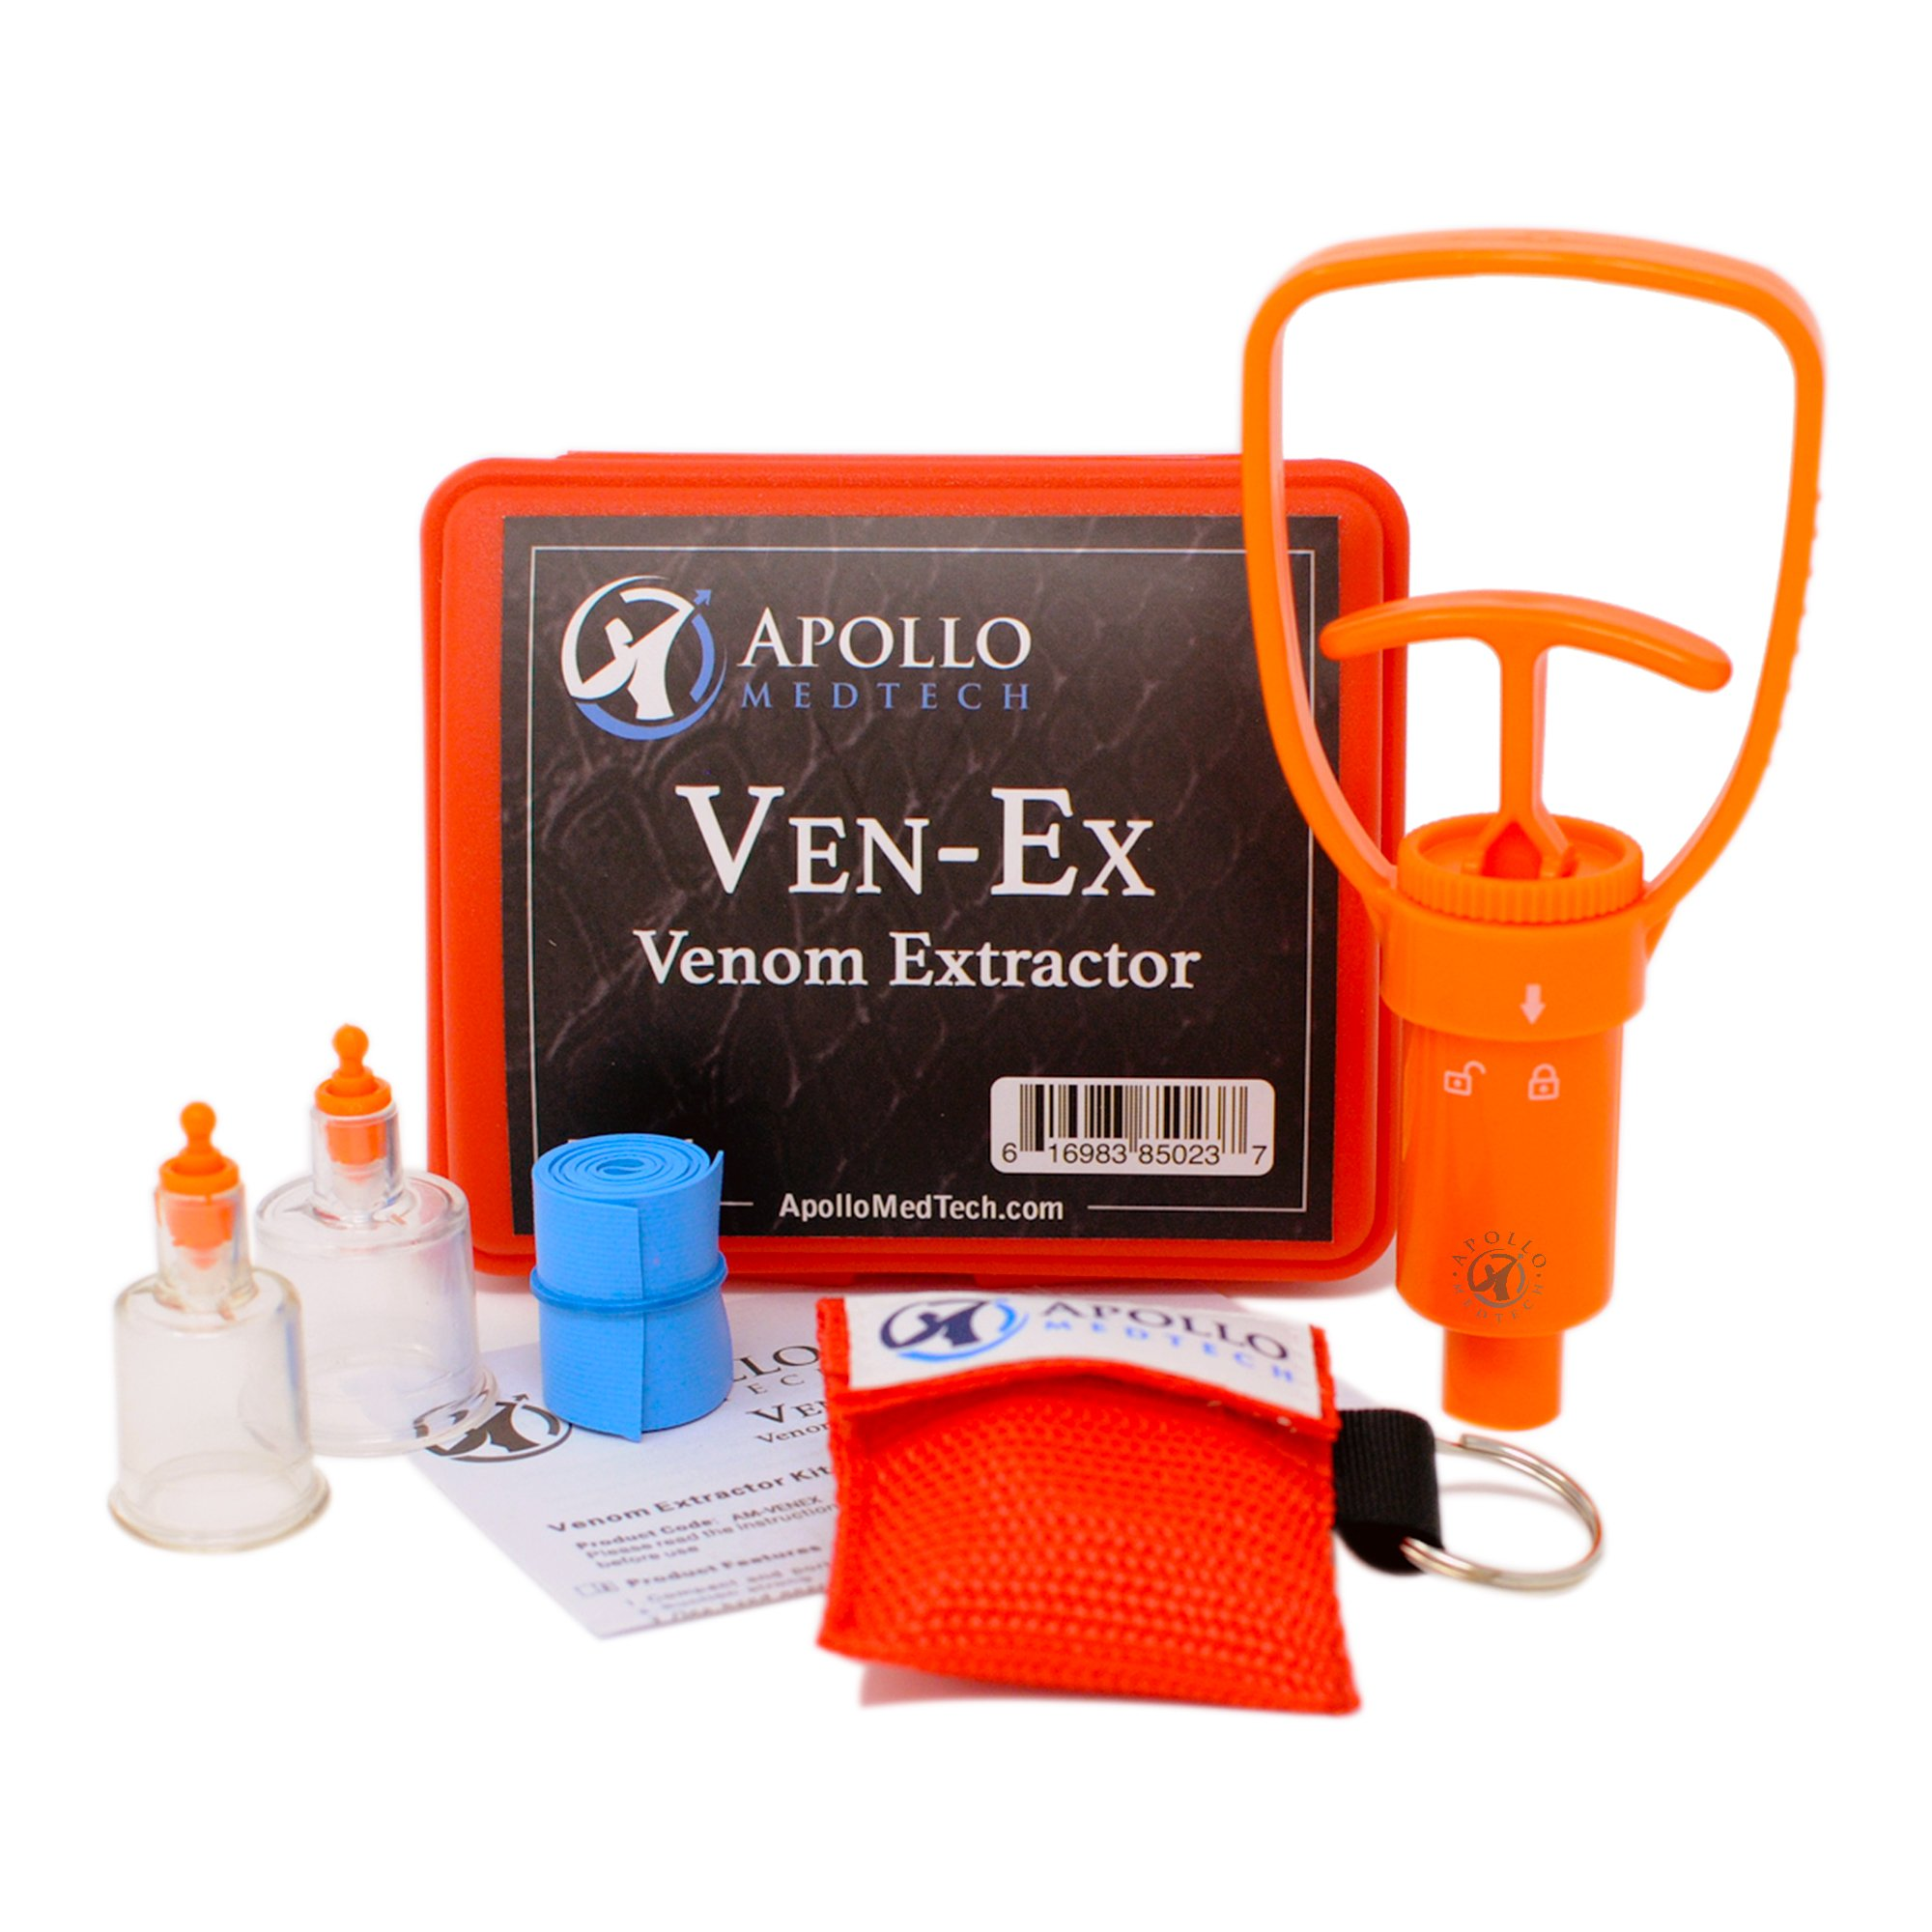 Ven-Ex Snake Bite Kit, Bee Sting Kit, Emergency First Aid Supplies, Venom Extractor Suction Pump, Bite and Sting First Aid for Hiking, Backpacking and Camping. Includes BONUS CPR face shield.